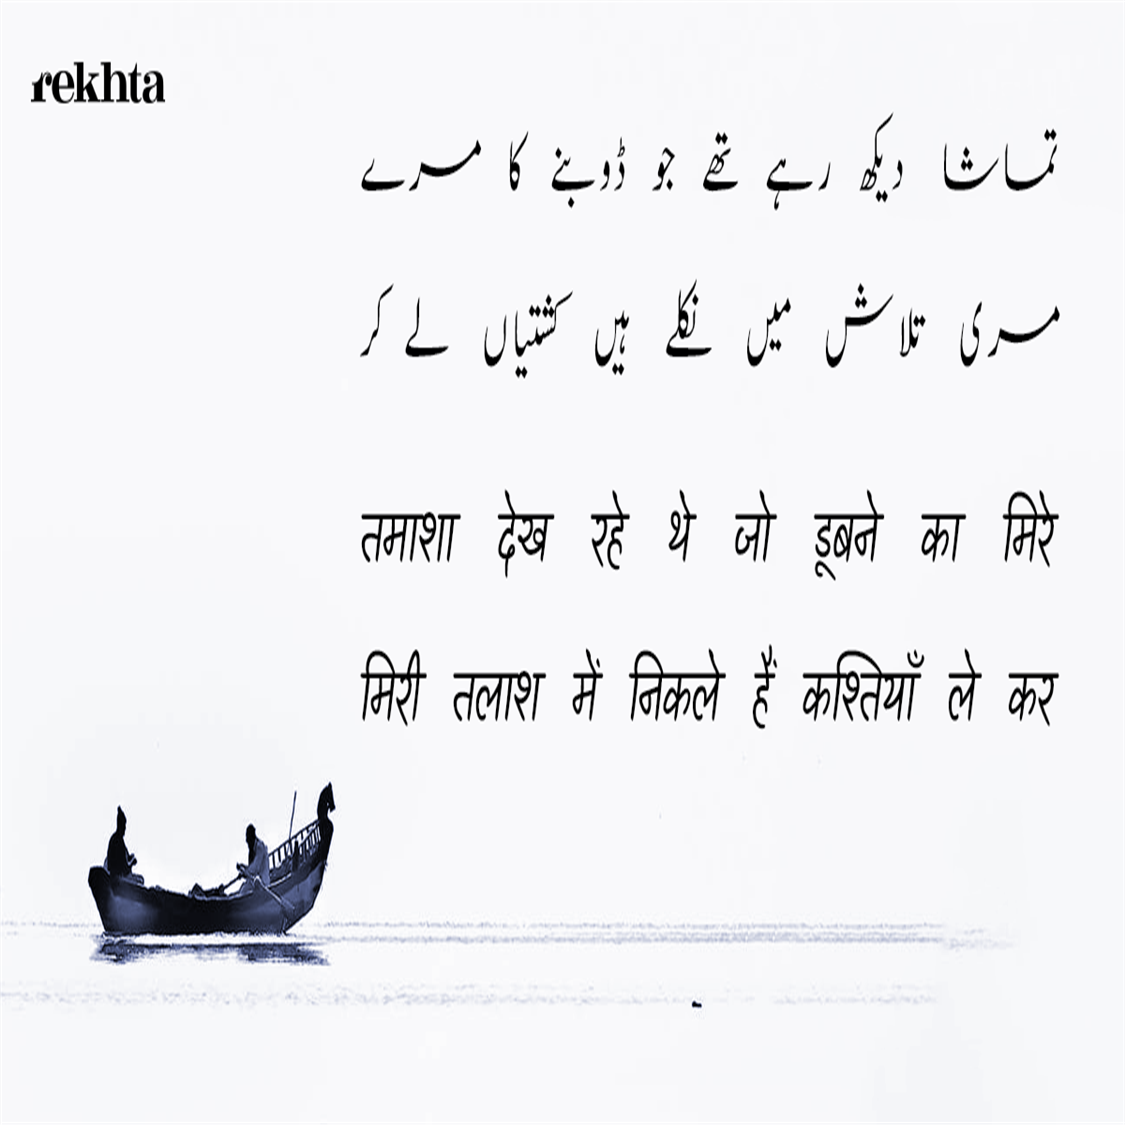 tamaashaa dekh rahe the jo Duubne kaa mire-Unknown